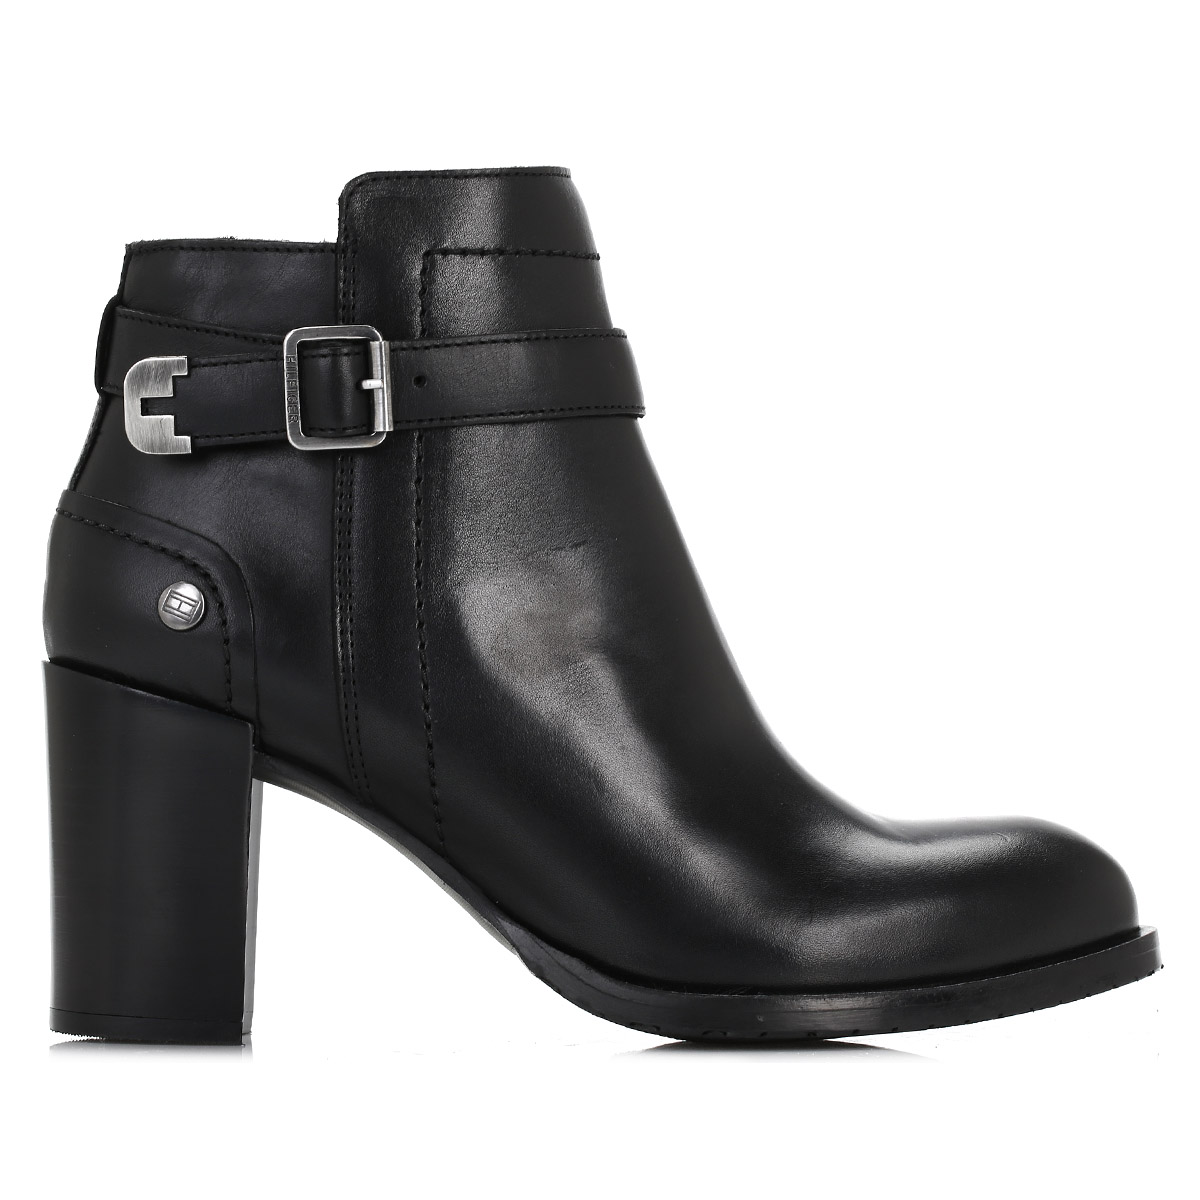 tommy hilfiger womens ankle boots black penelope 3a. Black Bedroom Furniture Sets. Home Design Ideas